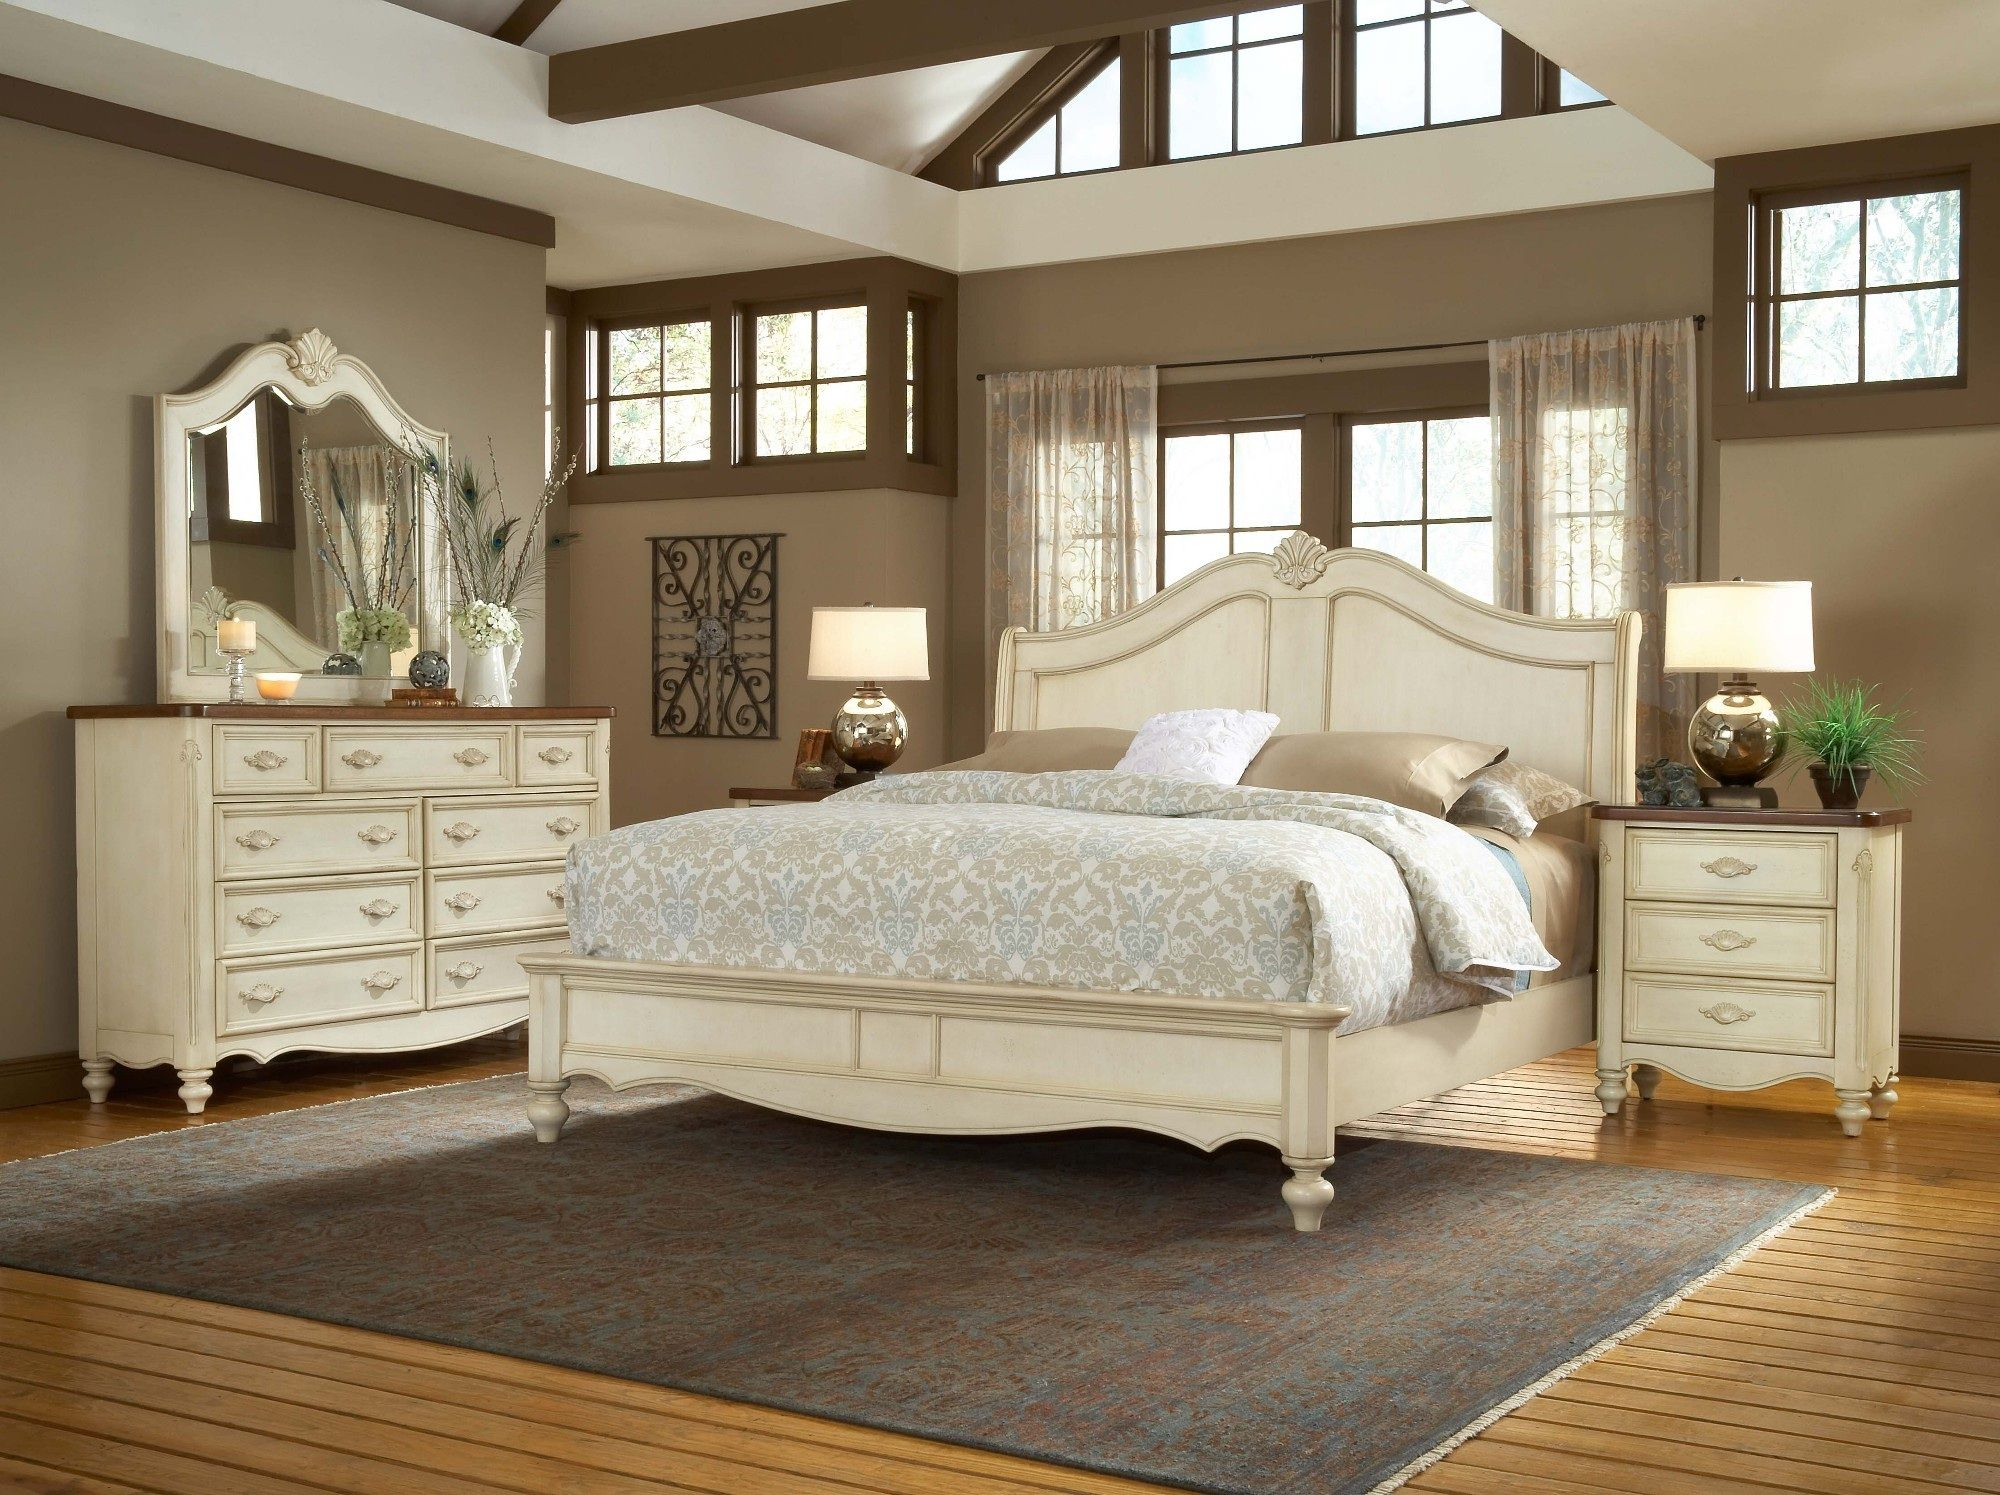 Ordinaire Enchanting Ikea Bedroom Sets